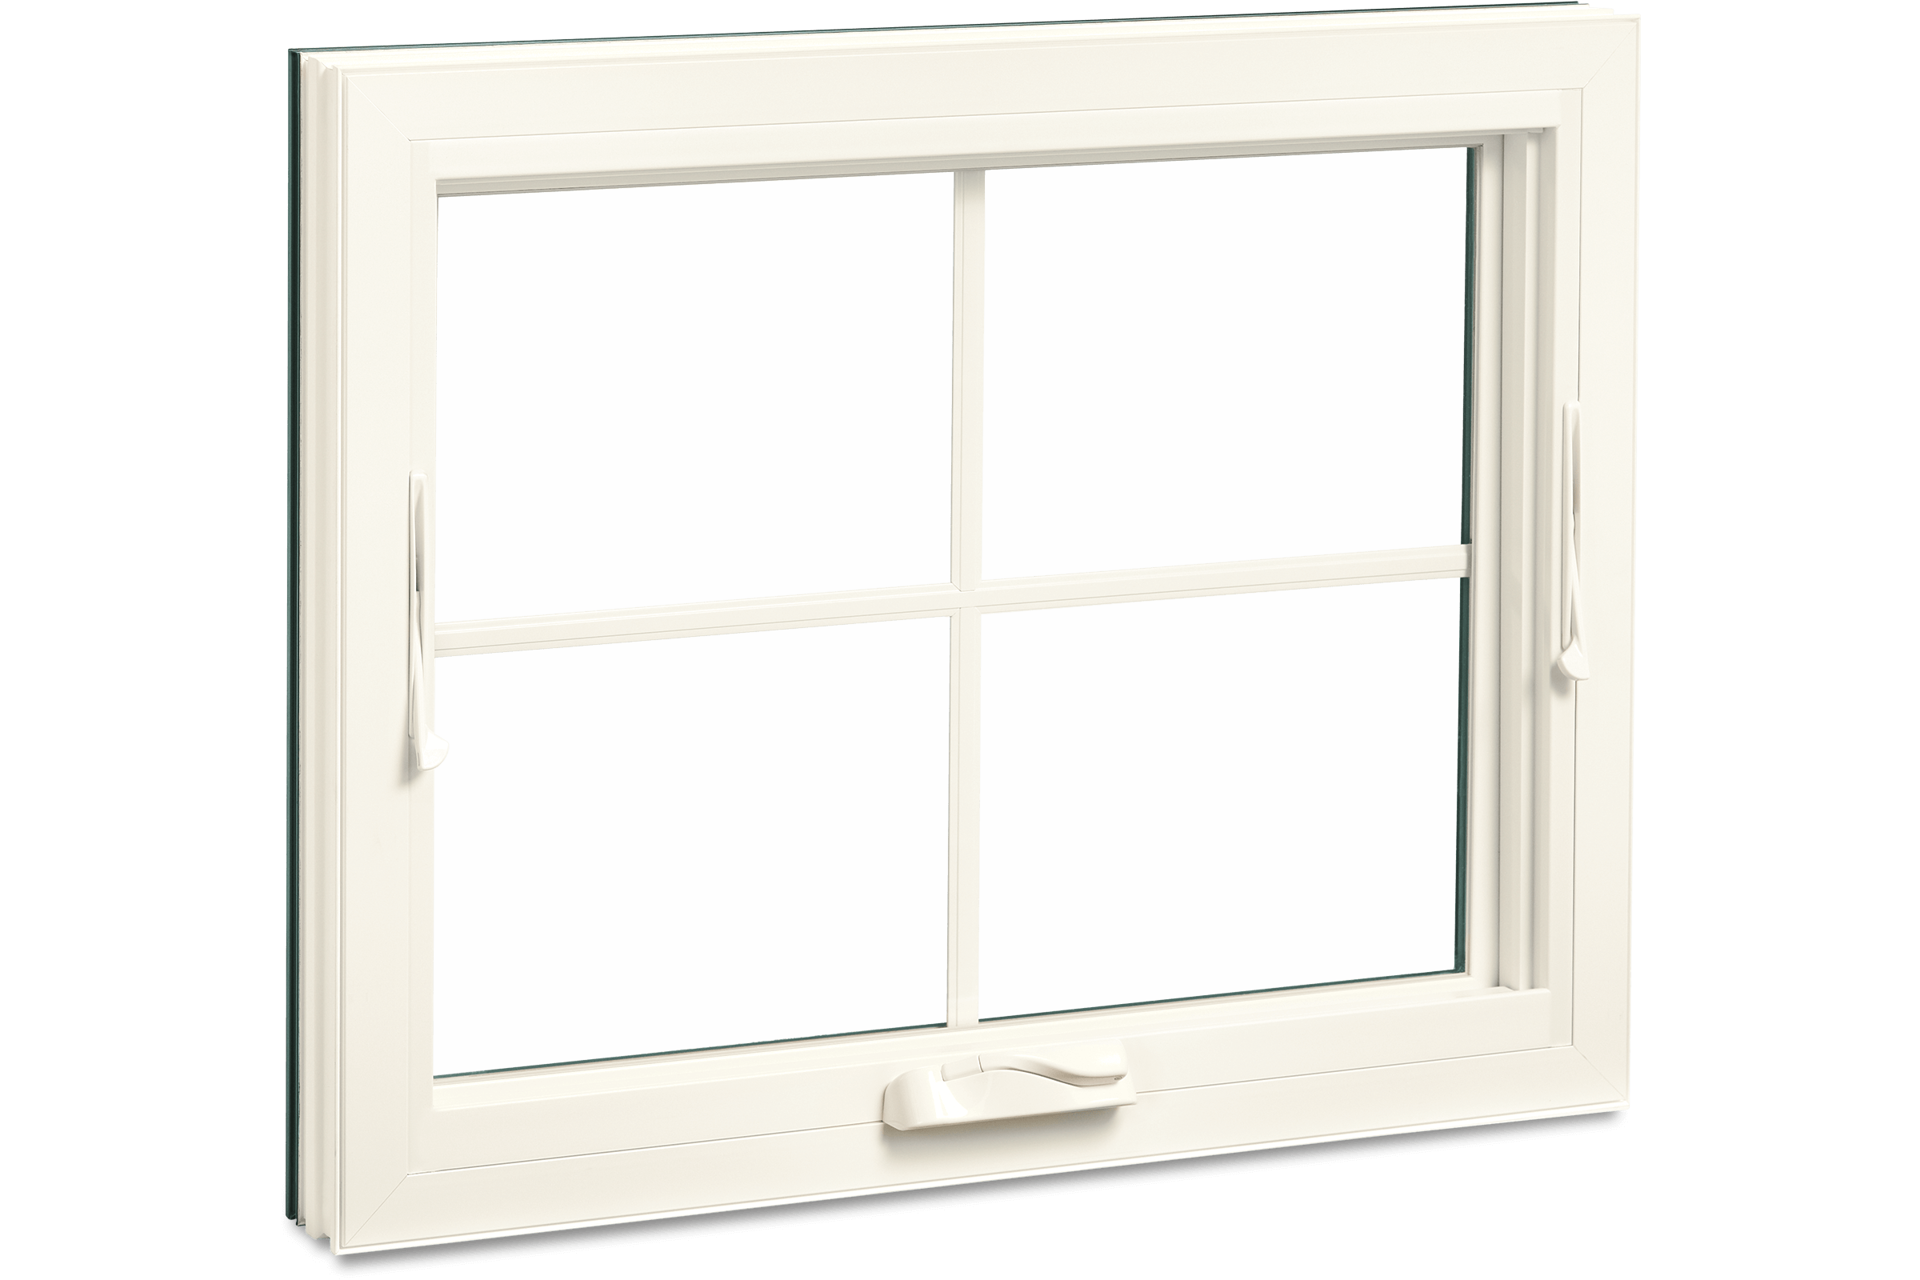 Marvin Essential Awning Window Interior View In Stone White